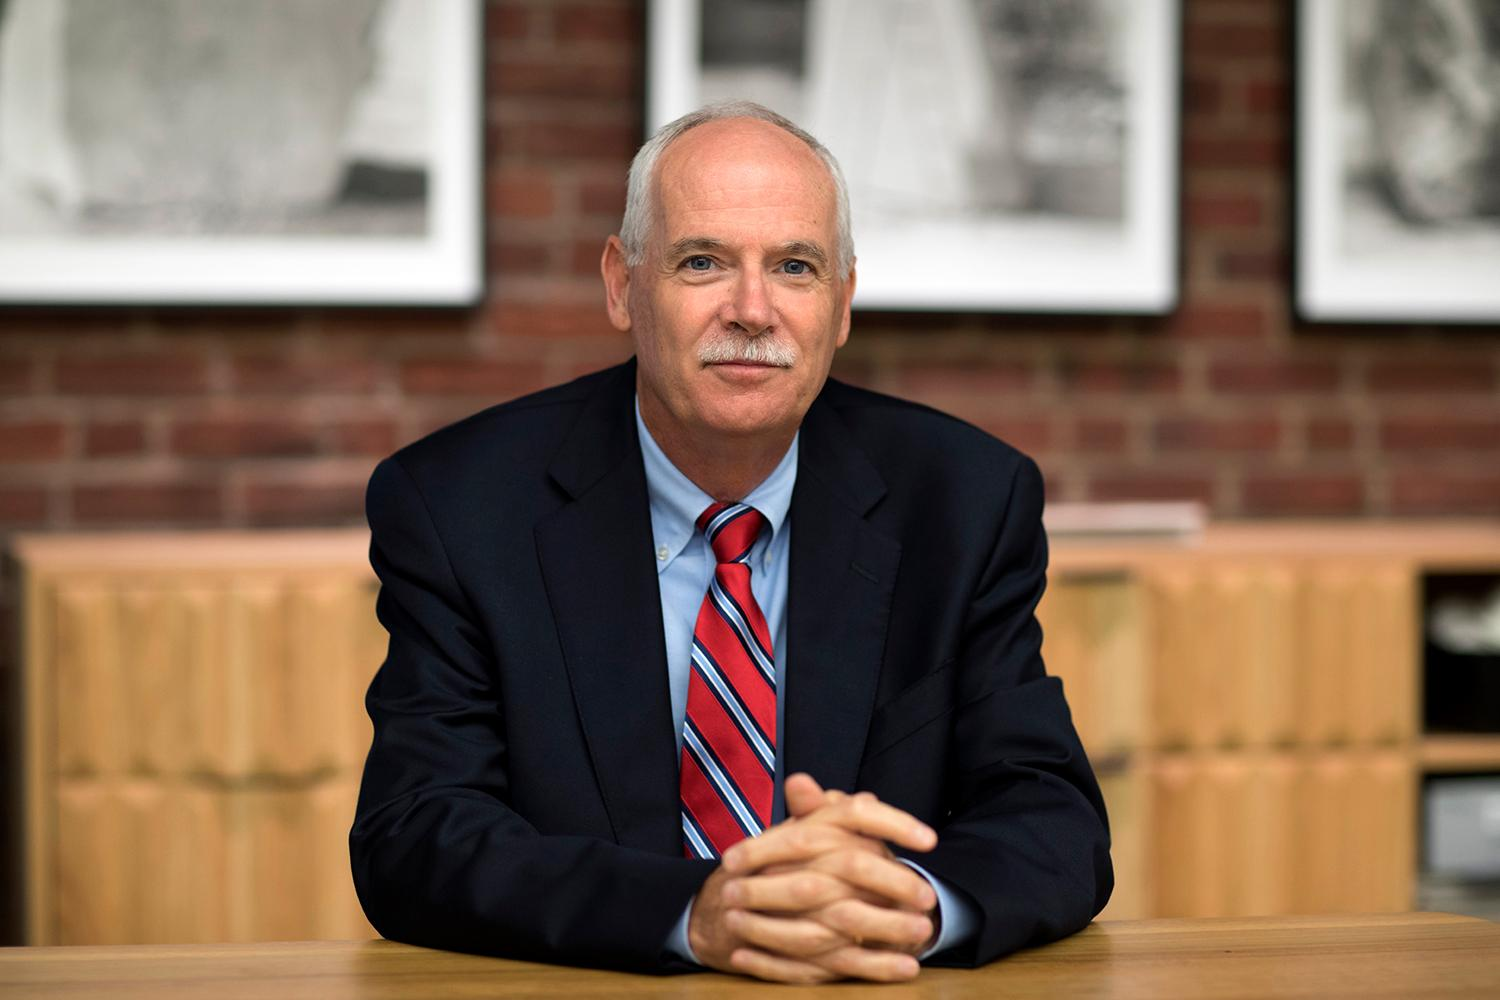 Bob Creeden, Managing Director of the UVA Seed Fund and New Ventures